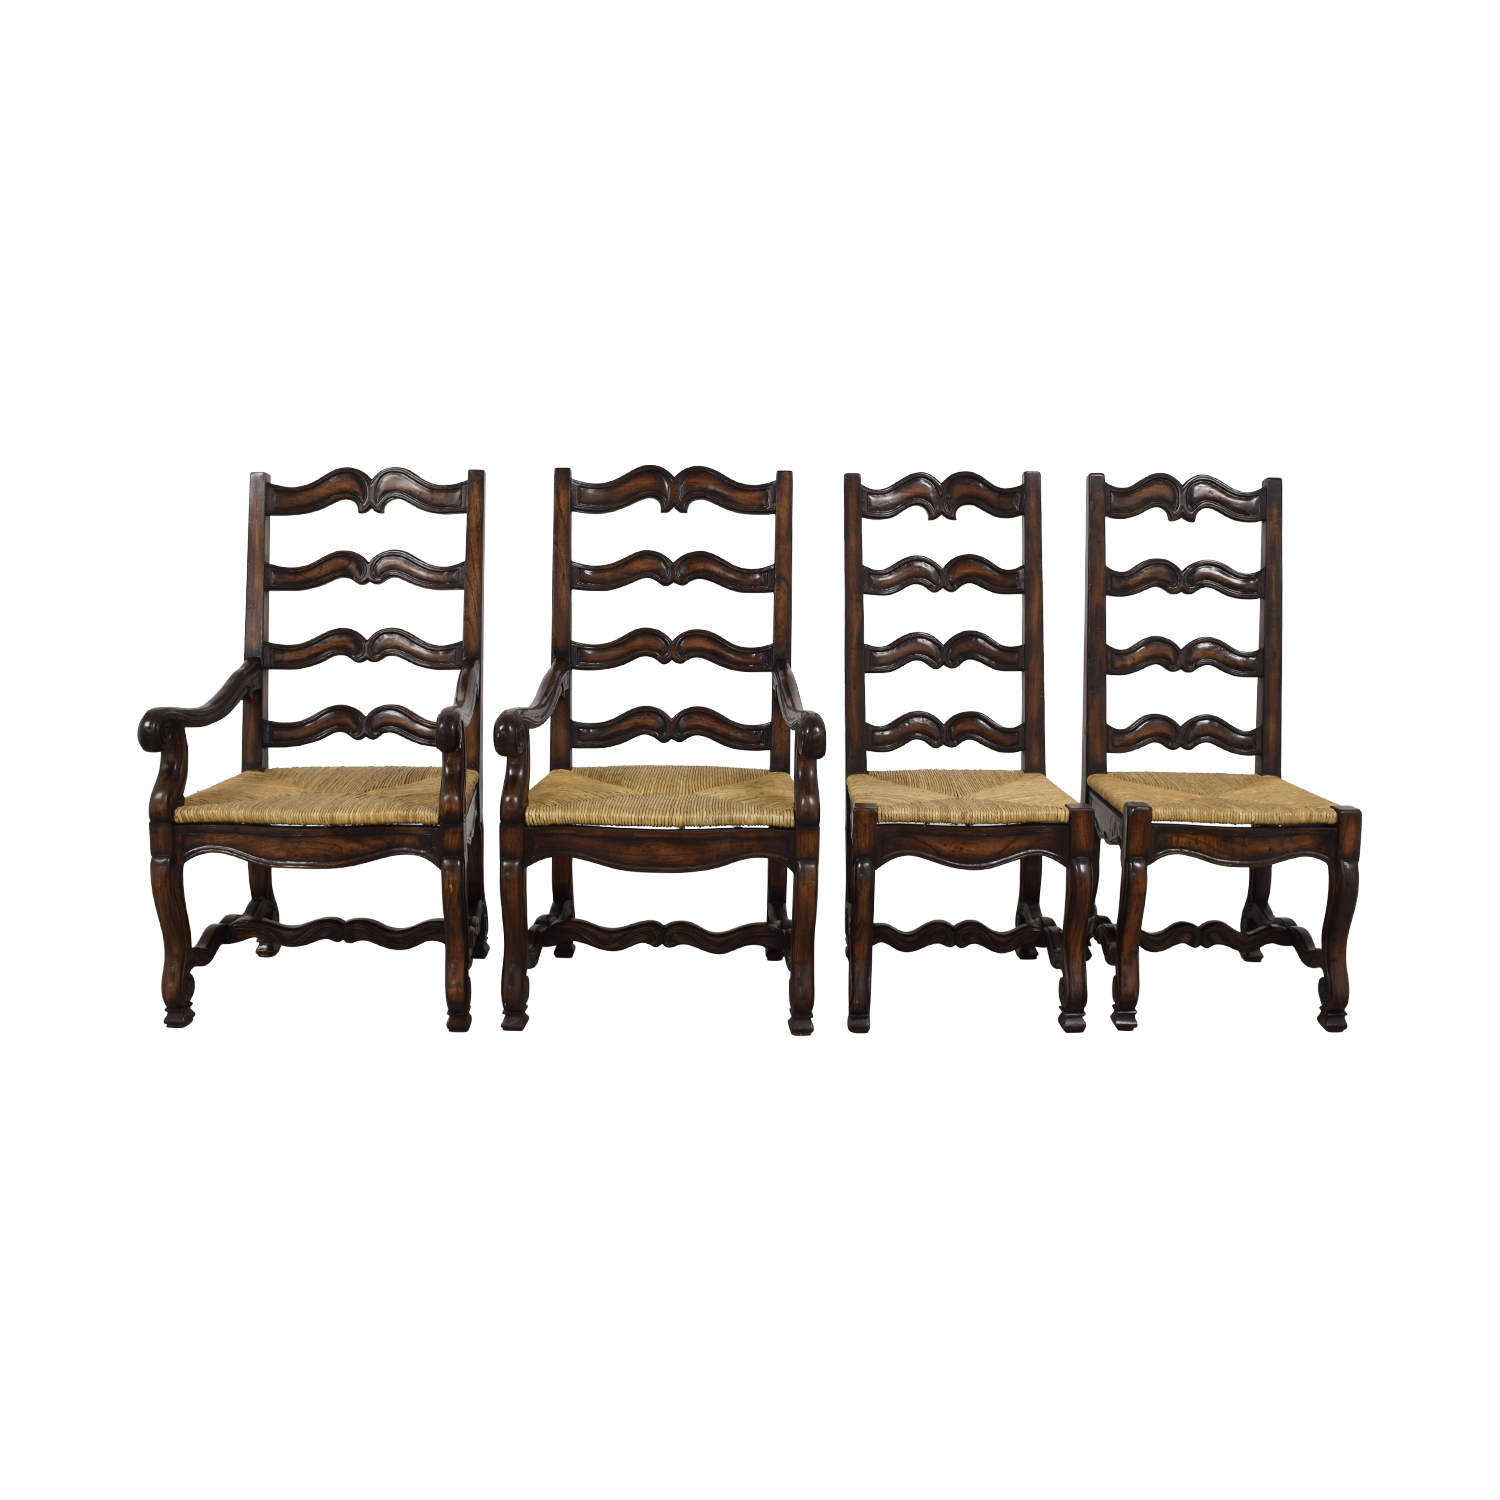 Ambella Home Ambella Home Wood and Straw Dining Chairs Brown, Beige